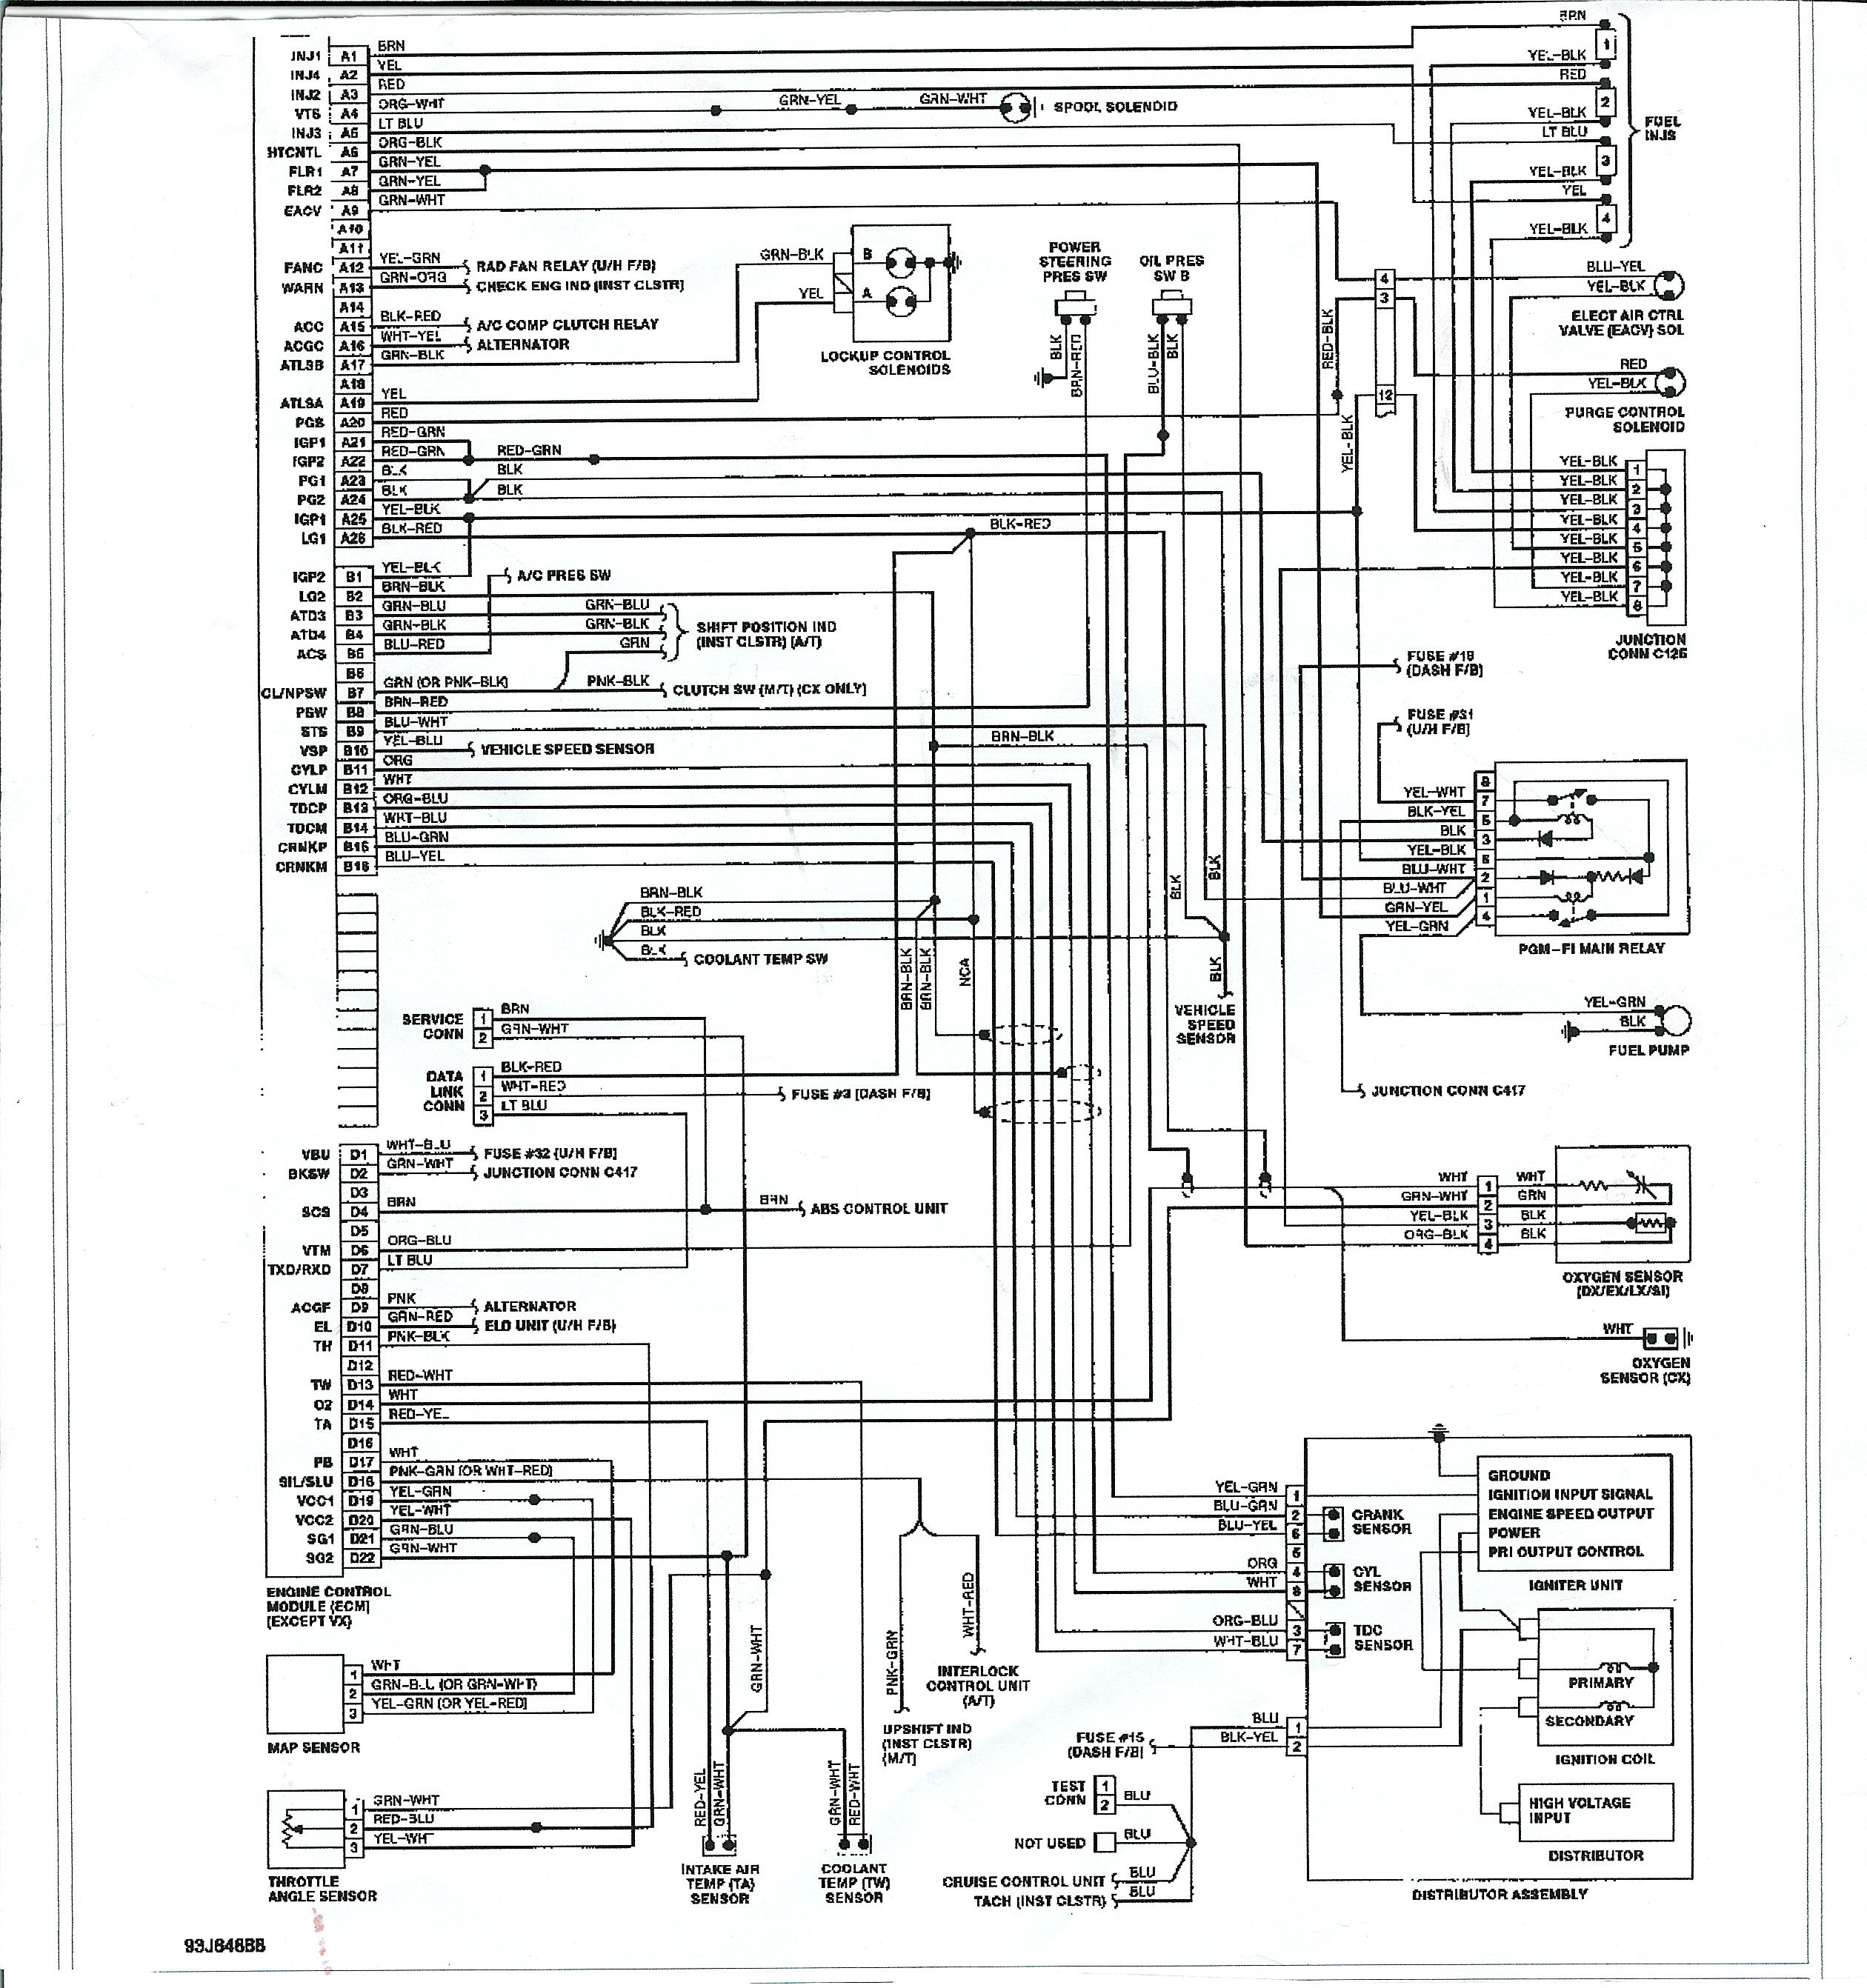 honda ecu schematic diagram